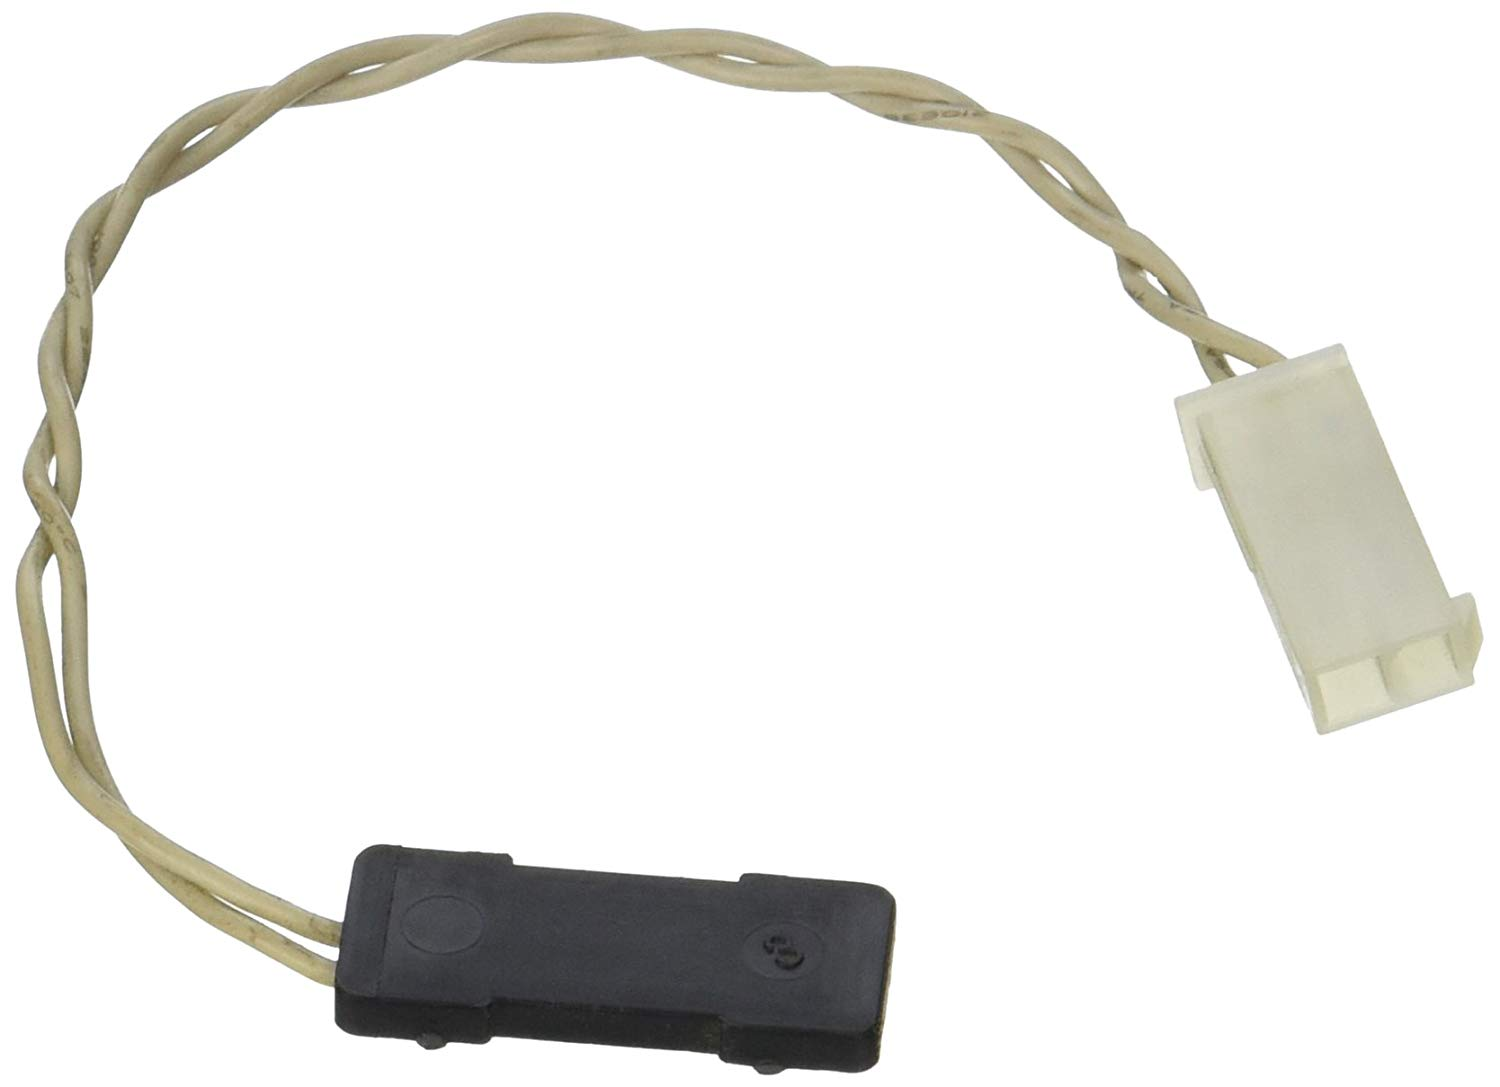 Norcold 620528 Thermistor to Troubleshoot Your RV Fridge